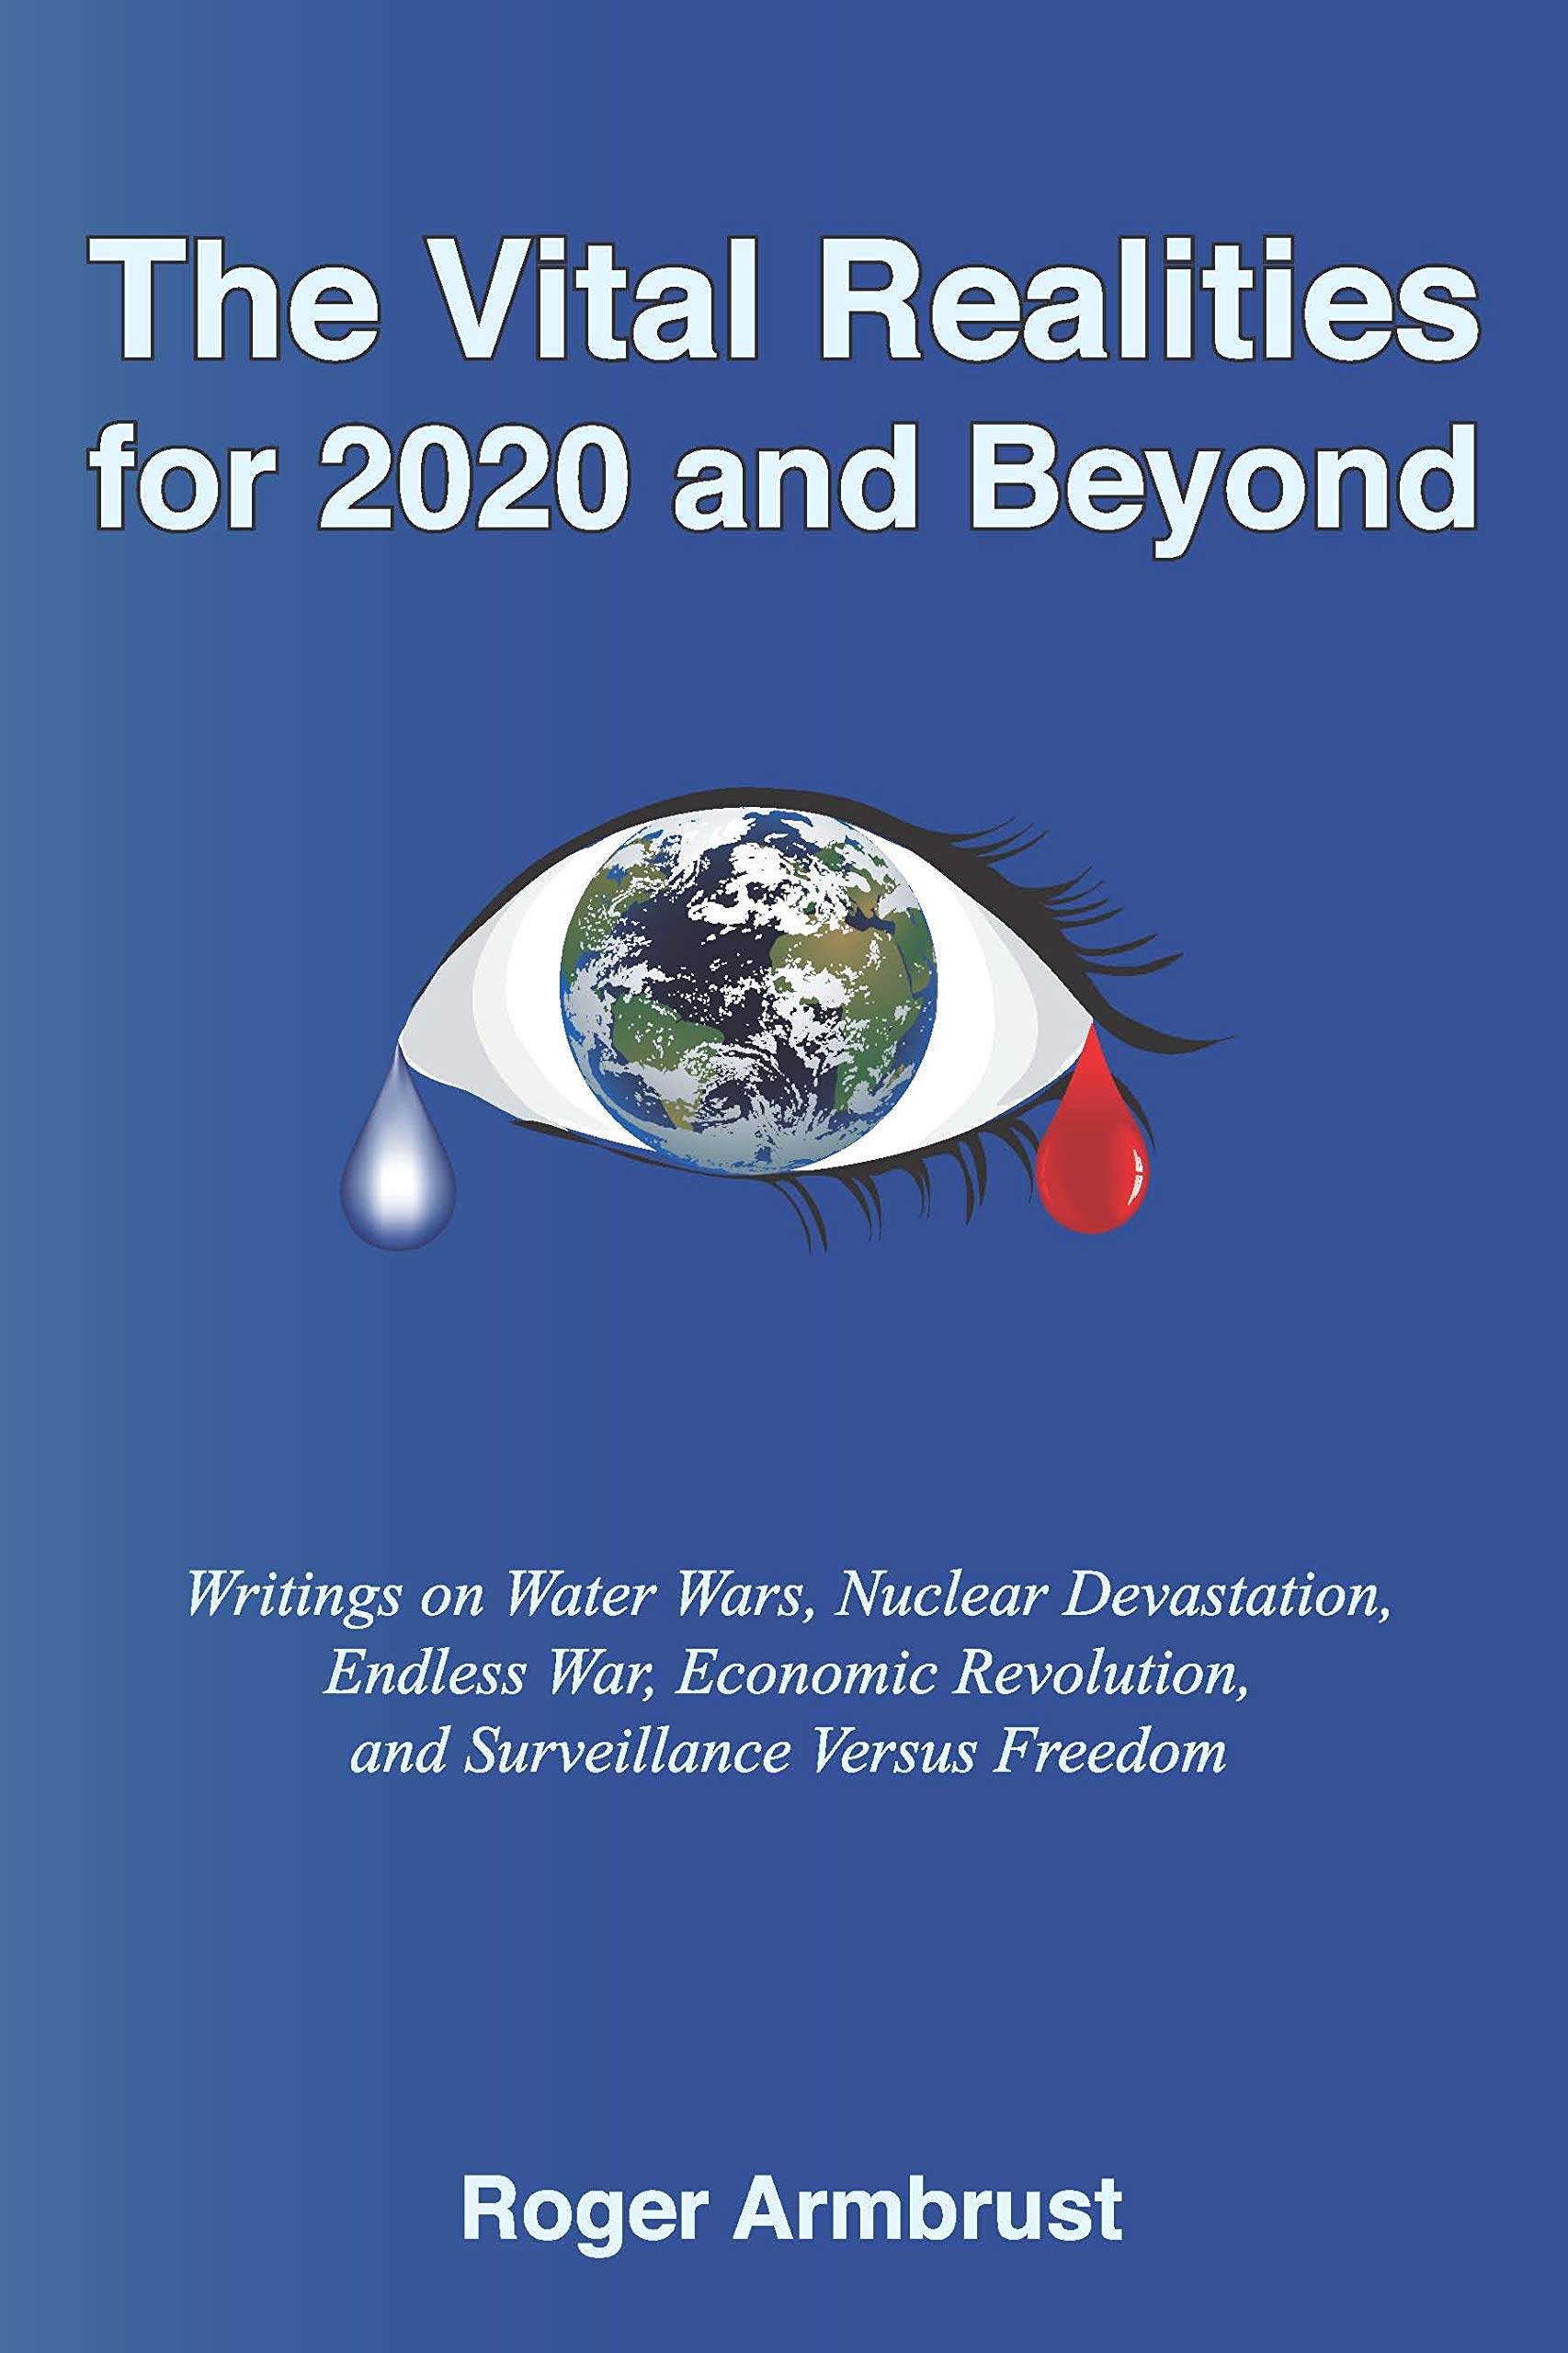 The Vital Realities for 2020 and Beyond: Writings on Water Wars, Nuclear Devastation, Endless War, Economic Revolution, and Surveillance Versus Freedom